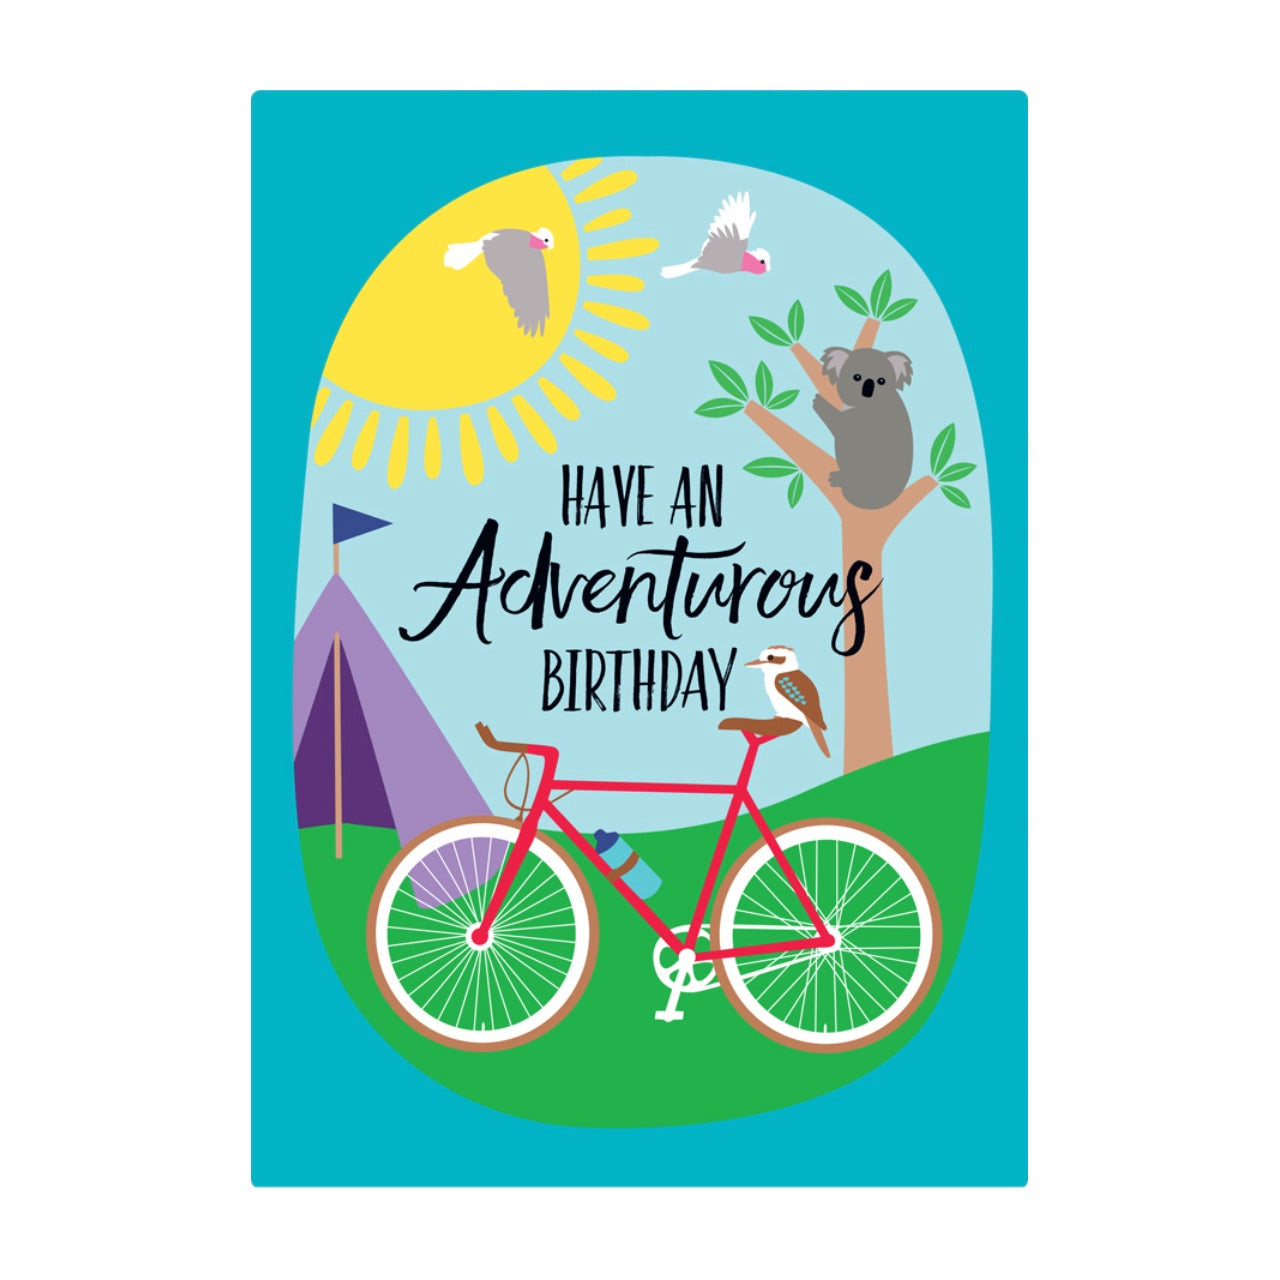 Earth Greetings Card -Adventurous Birthday